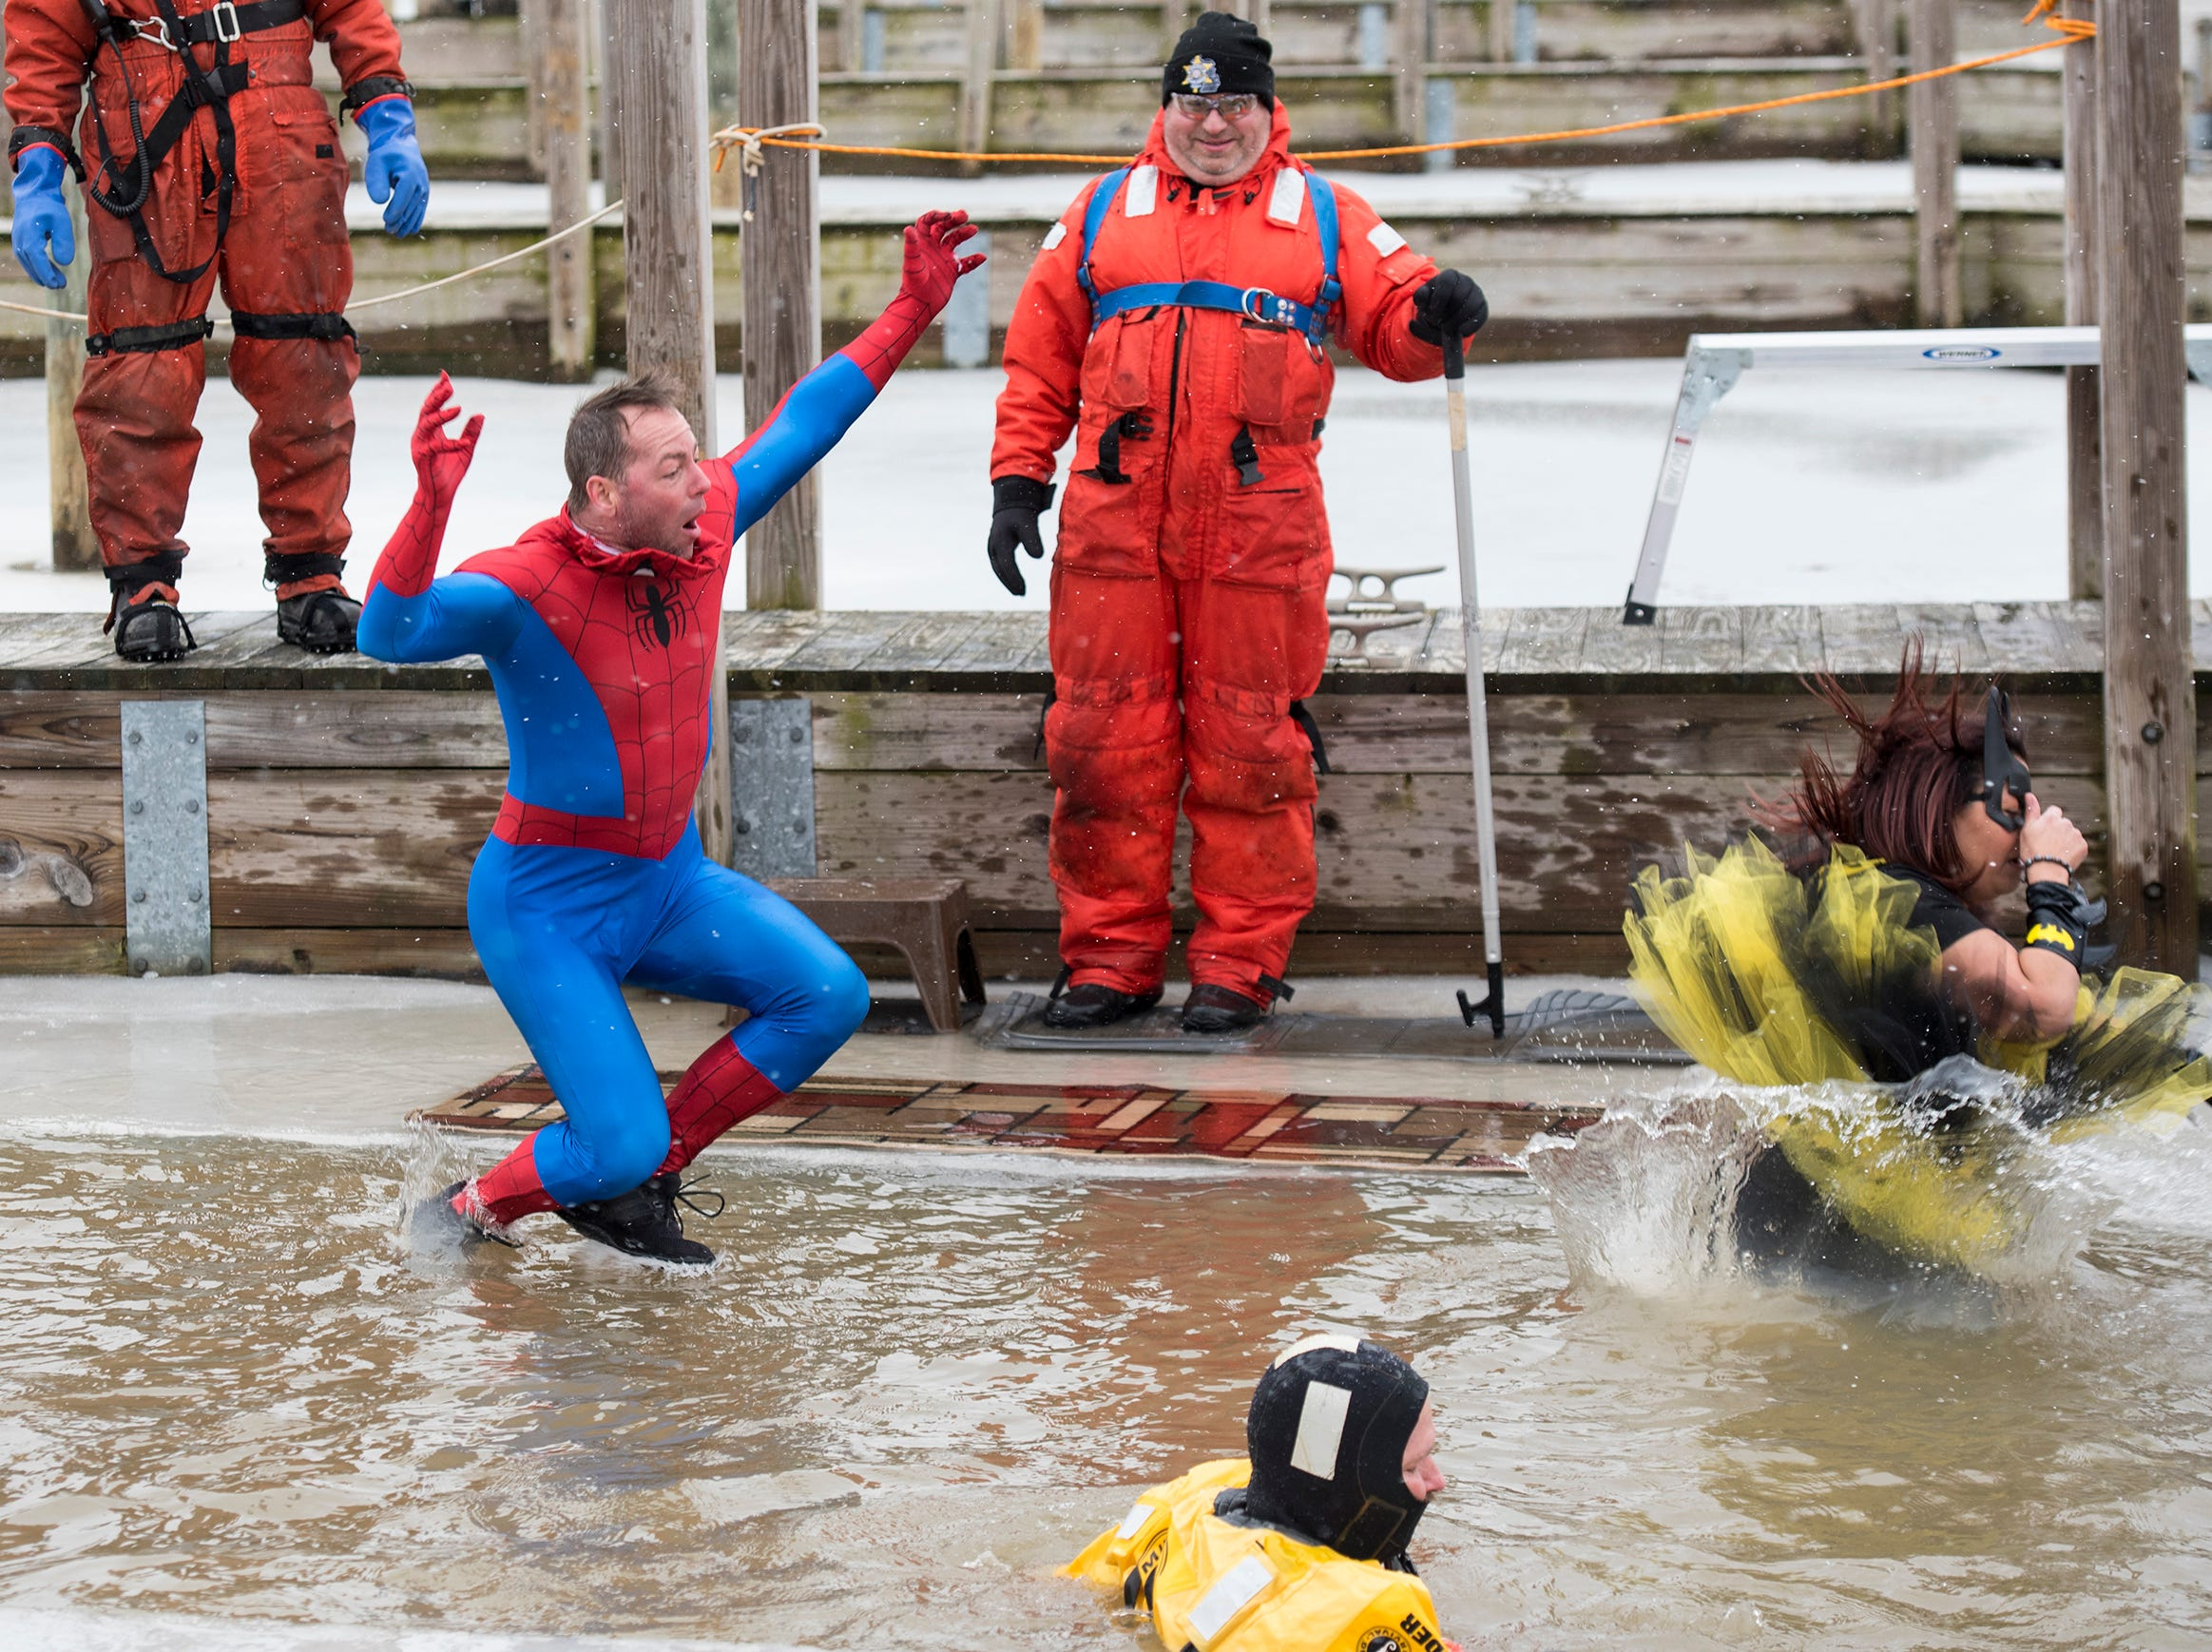 Plungers dressed as Spiderman and Bat Woman jump into the water in the St. Clair Boat Harbor through a hole cut in the ice  Sunday, Feb. 24, 2019 for the annual St. Clair Polar Plunge.